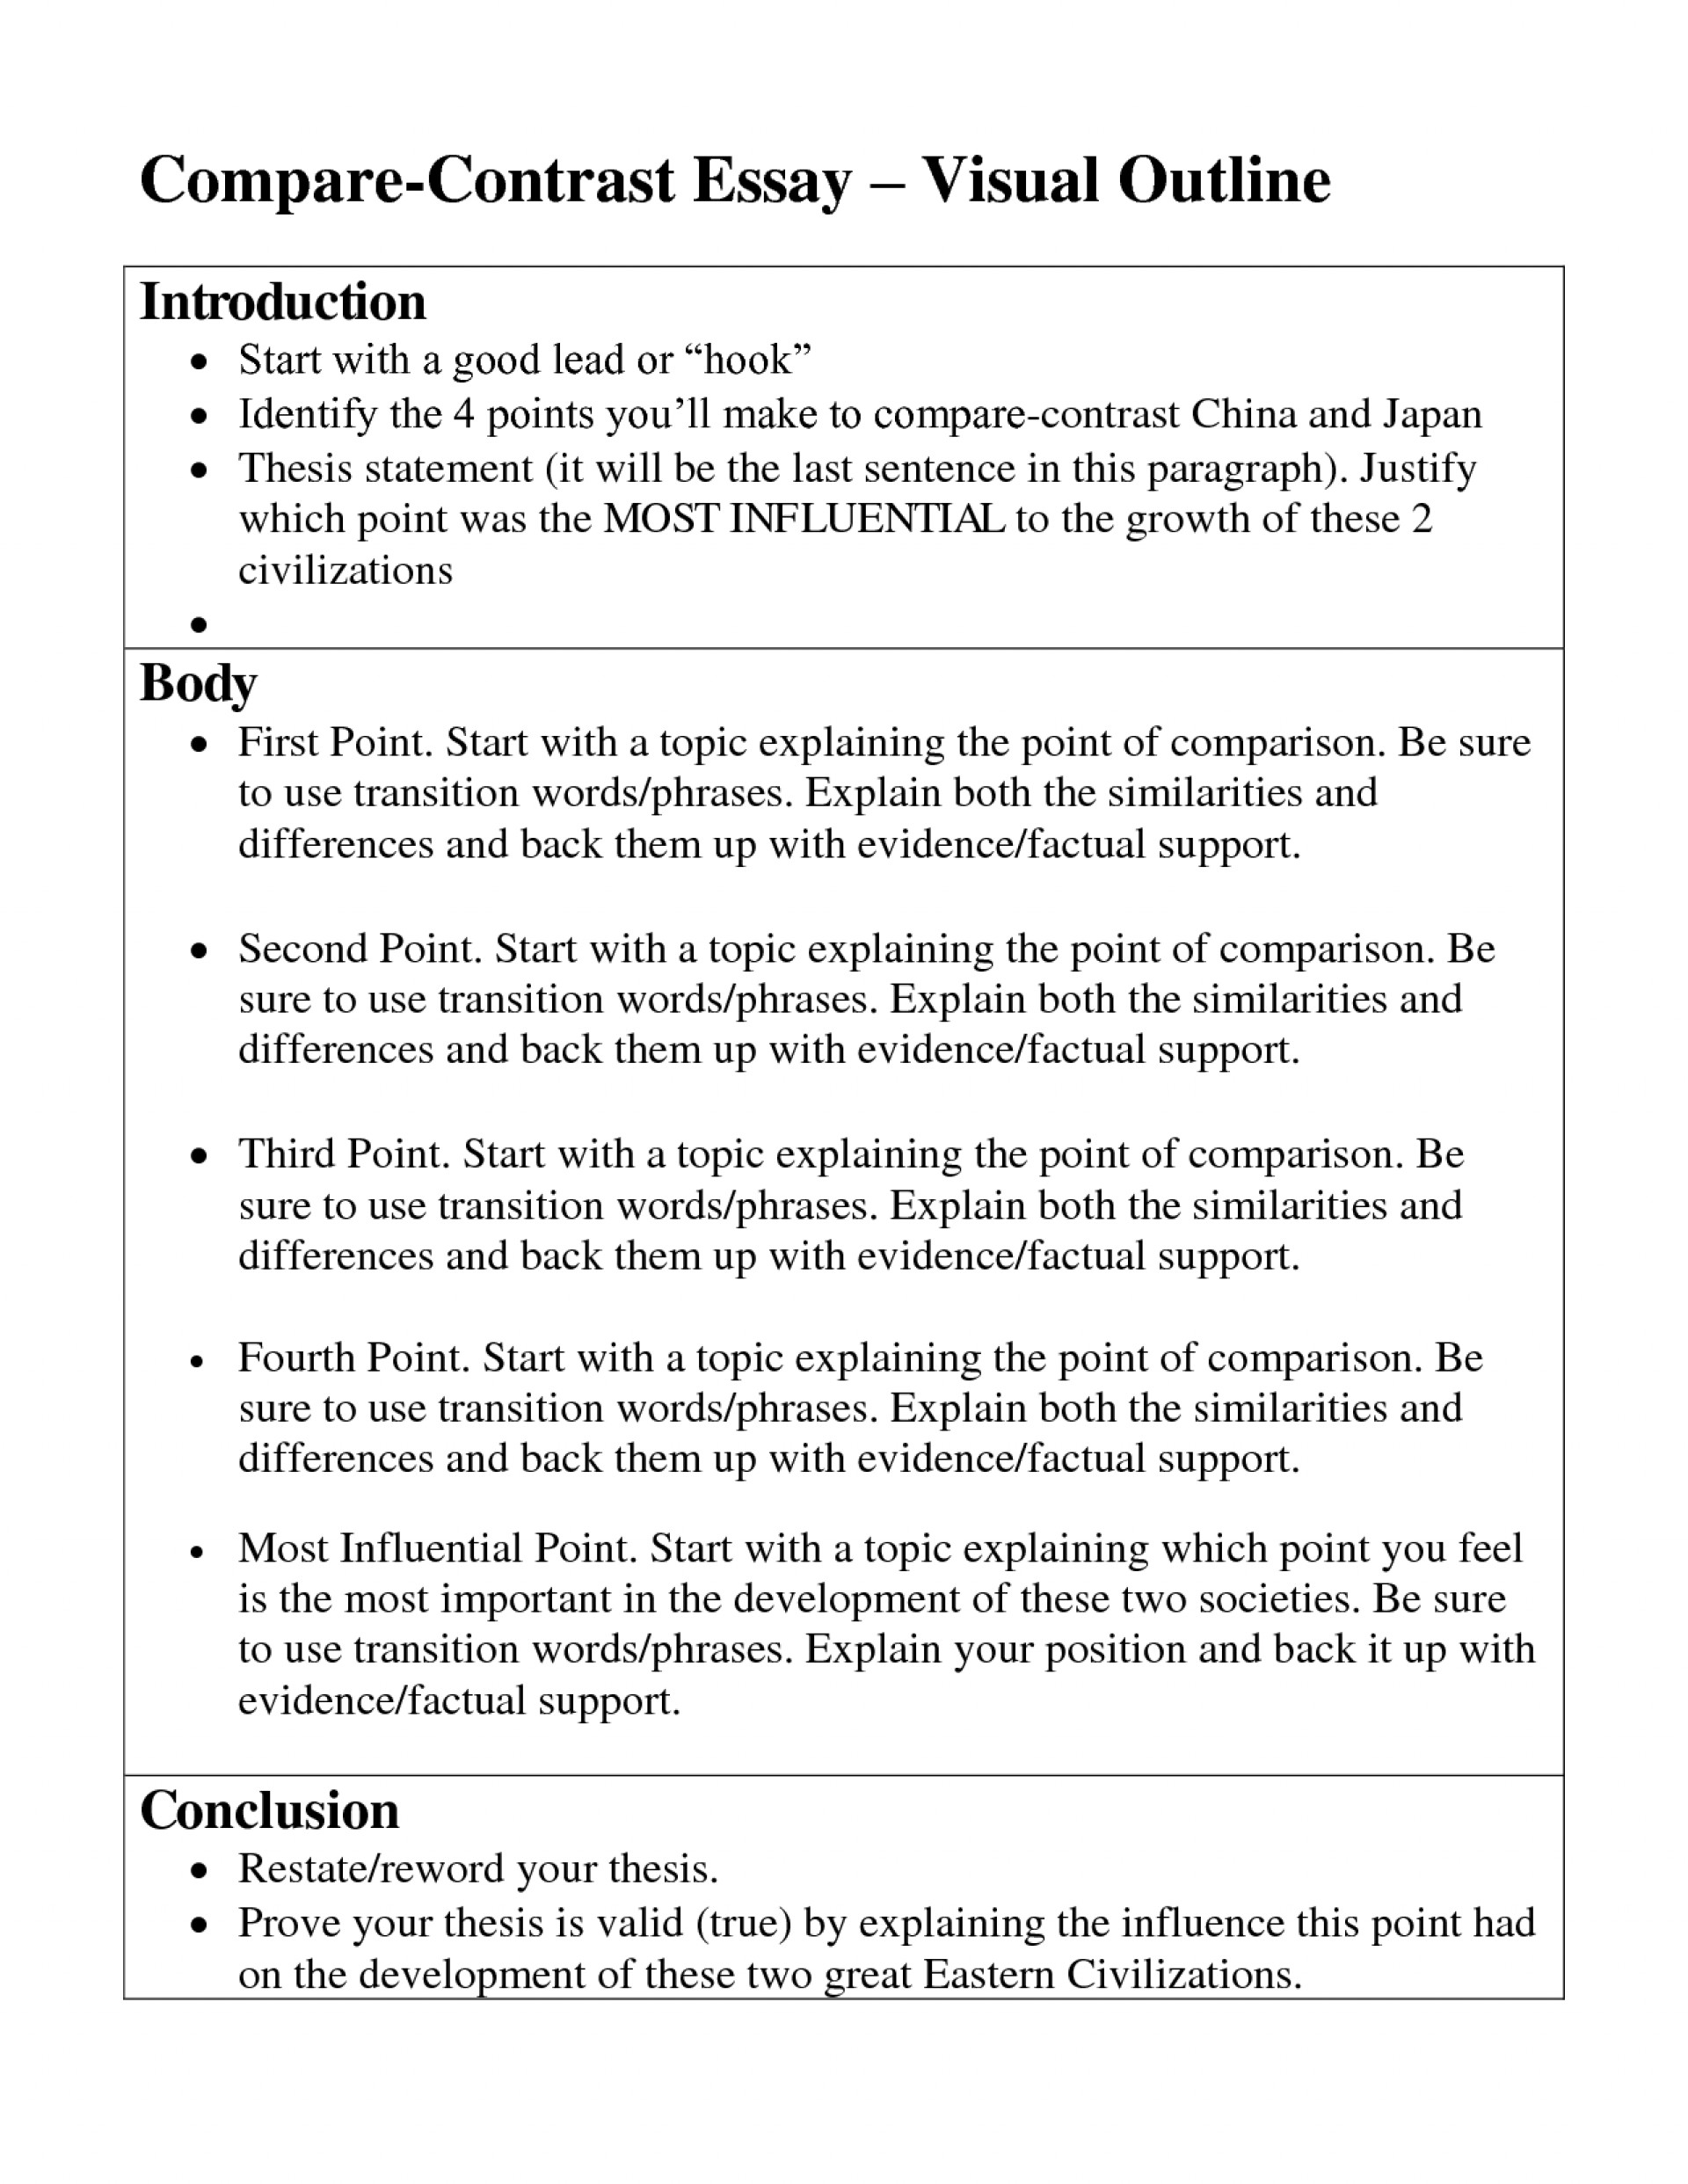 005 How To Write Compare And Contrast Essay Outstanding A Block Format Thesis Introduction Paragraph 1920